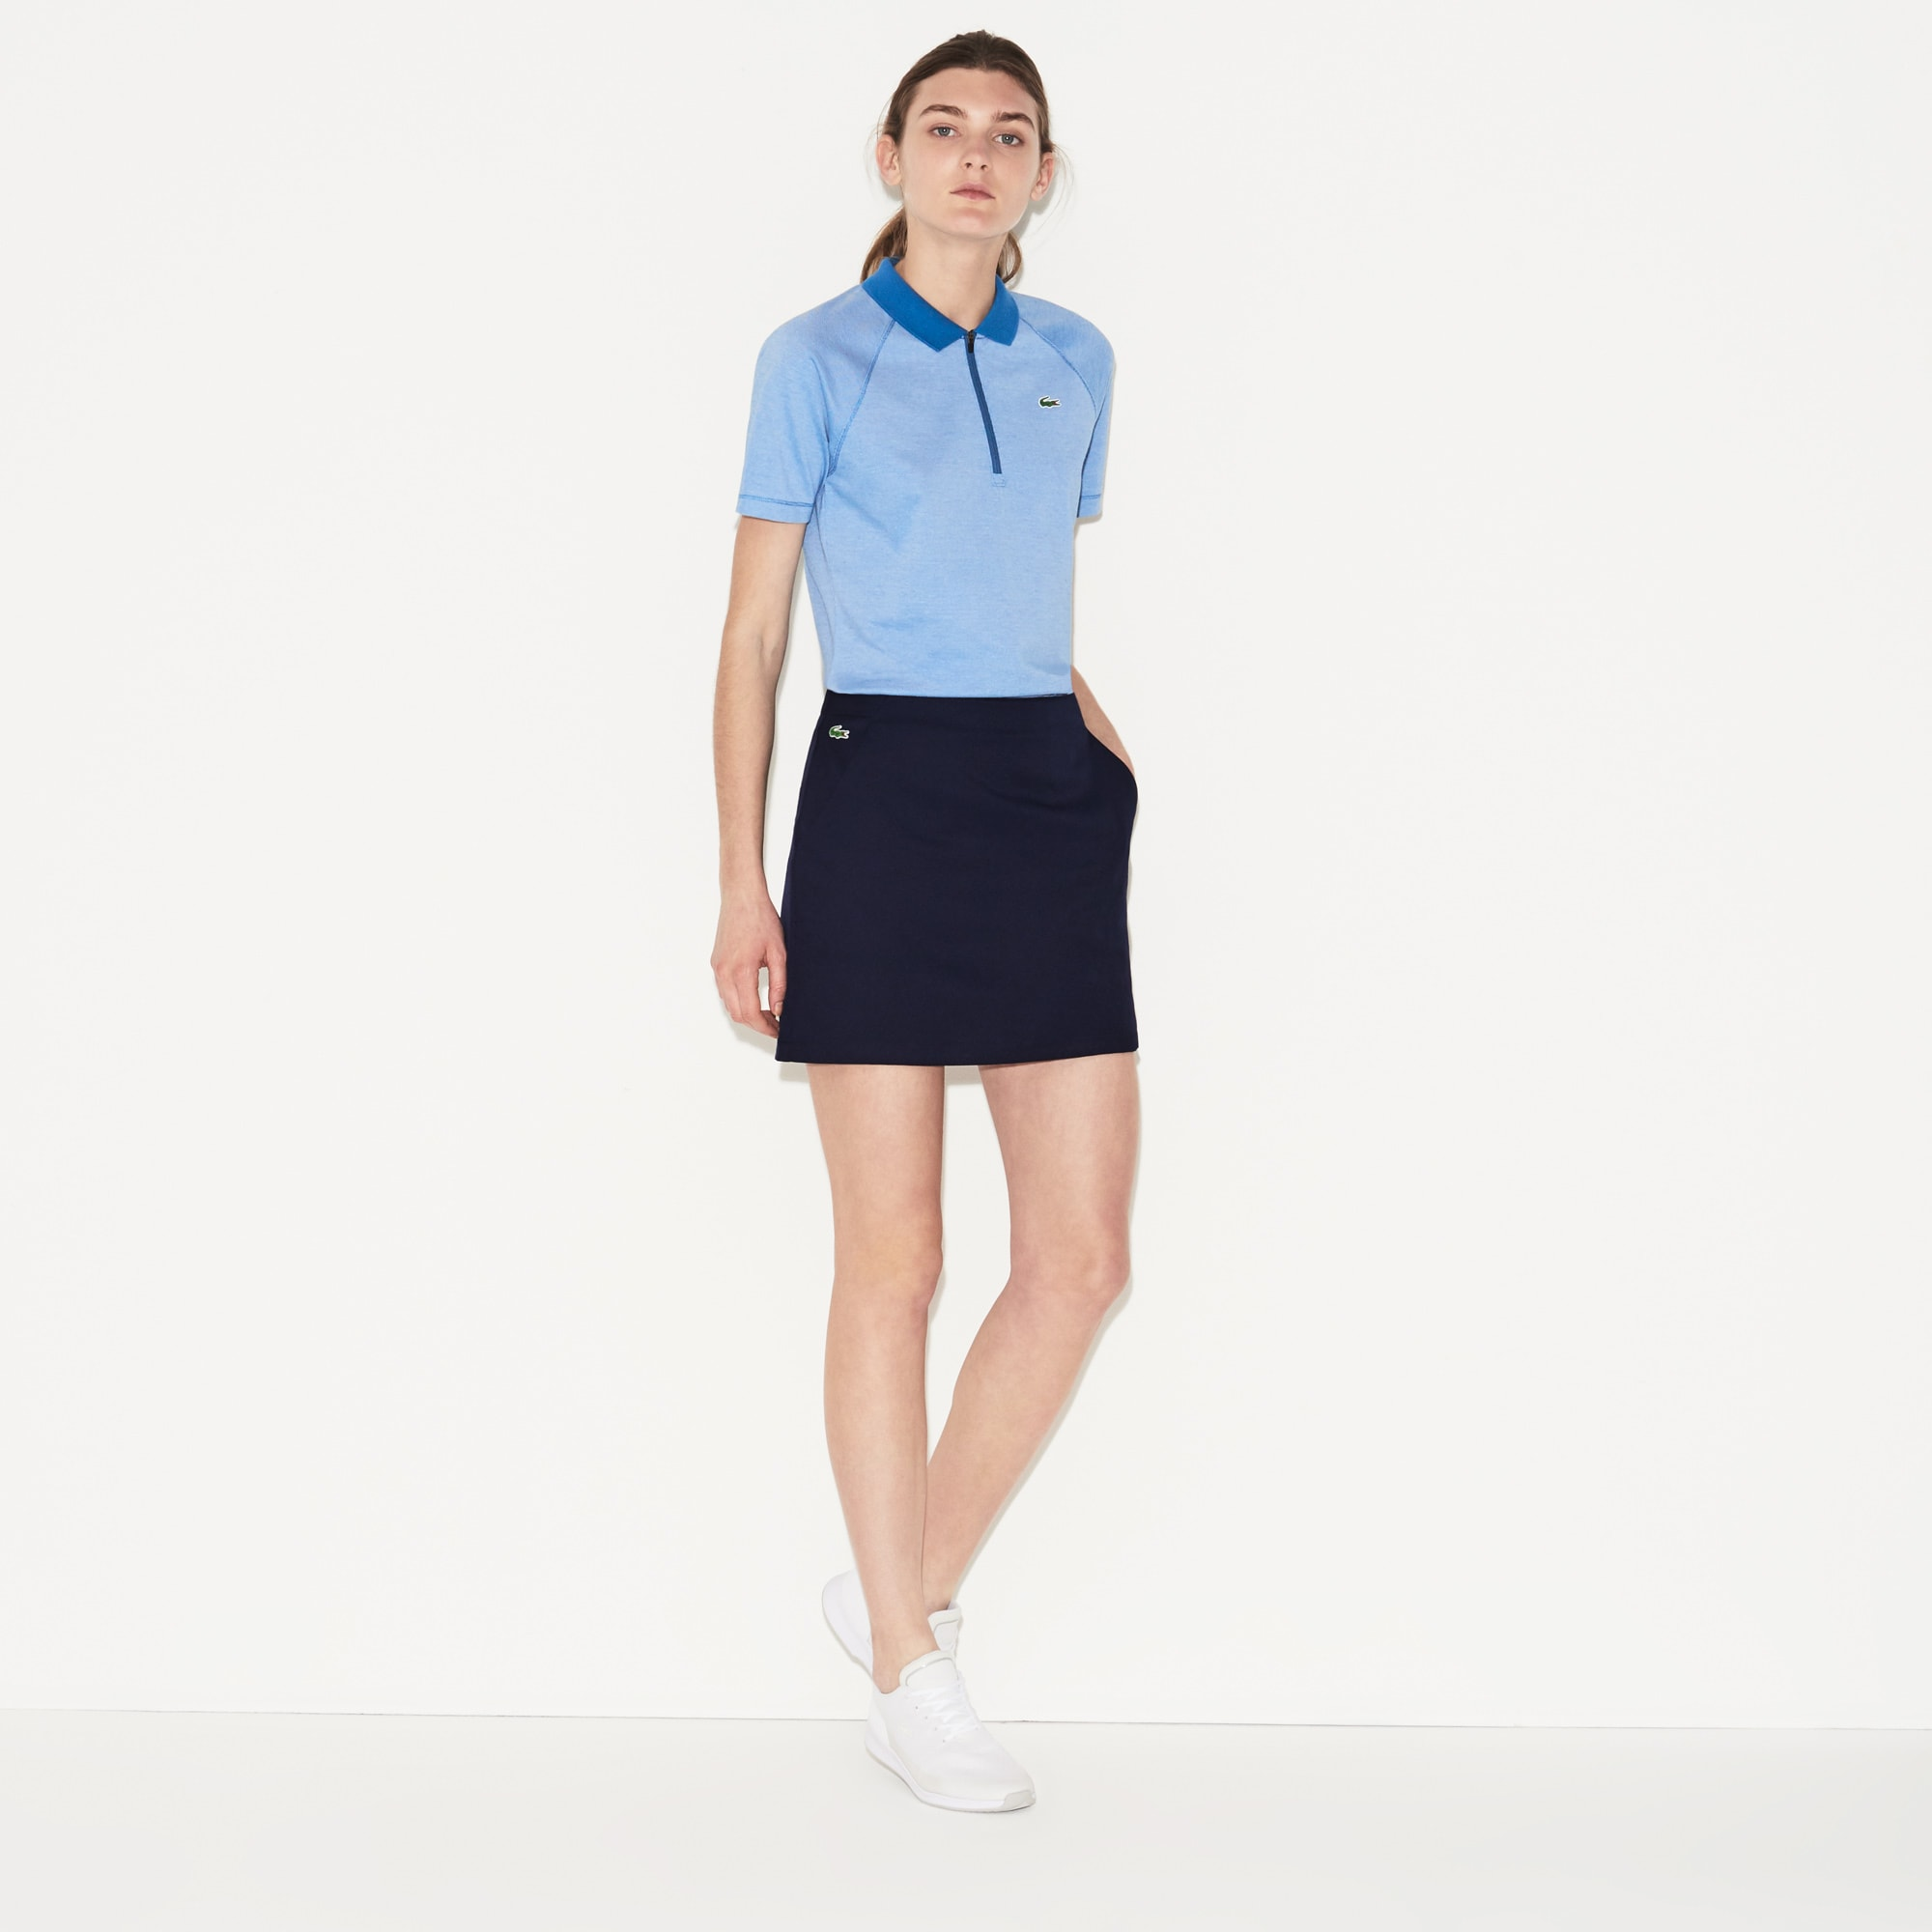 Damen LACOSTE SPORT Golf-Rock aus Funktionsgabardine